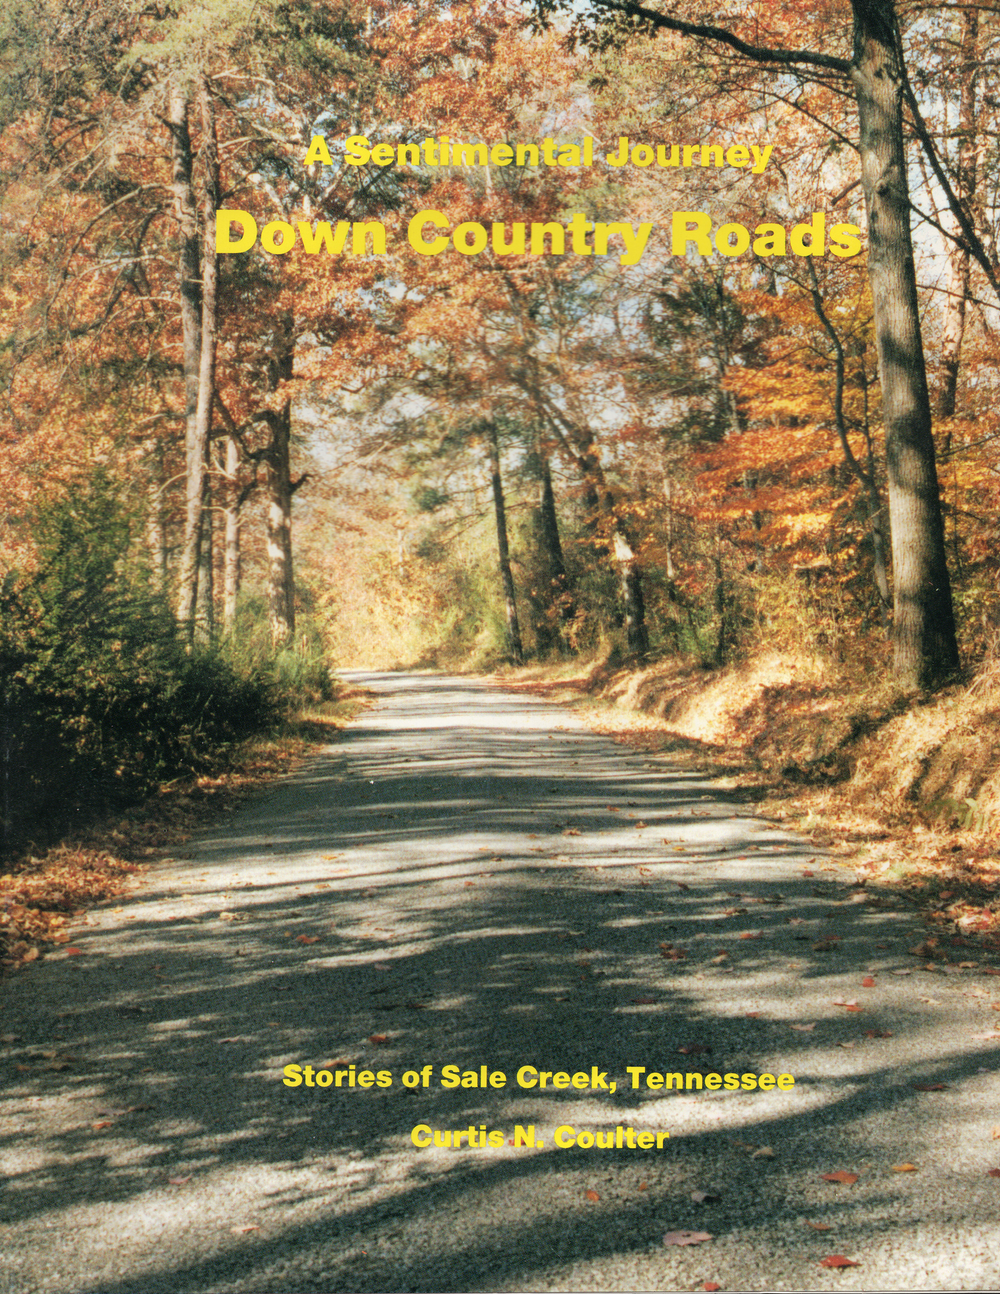 A Sentimental Journey Down Country Roads